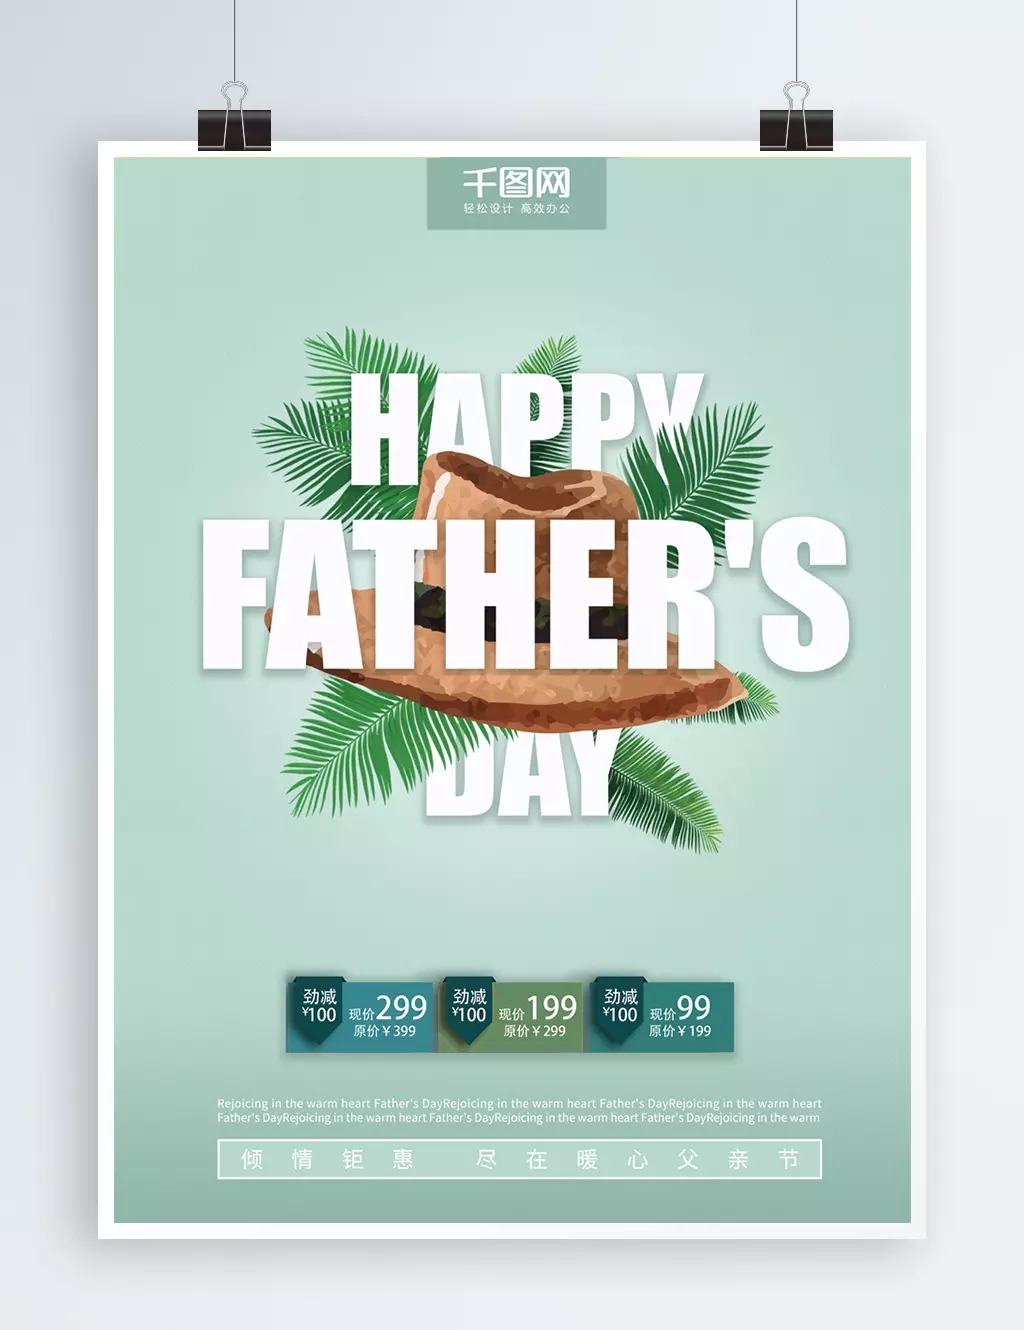 British Wind Green Minimalist Atmosphere Fathers Day Poster